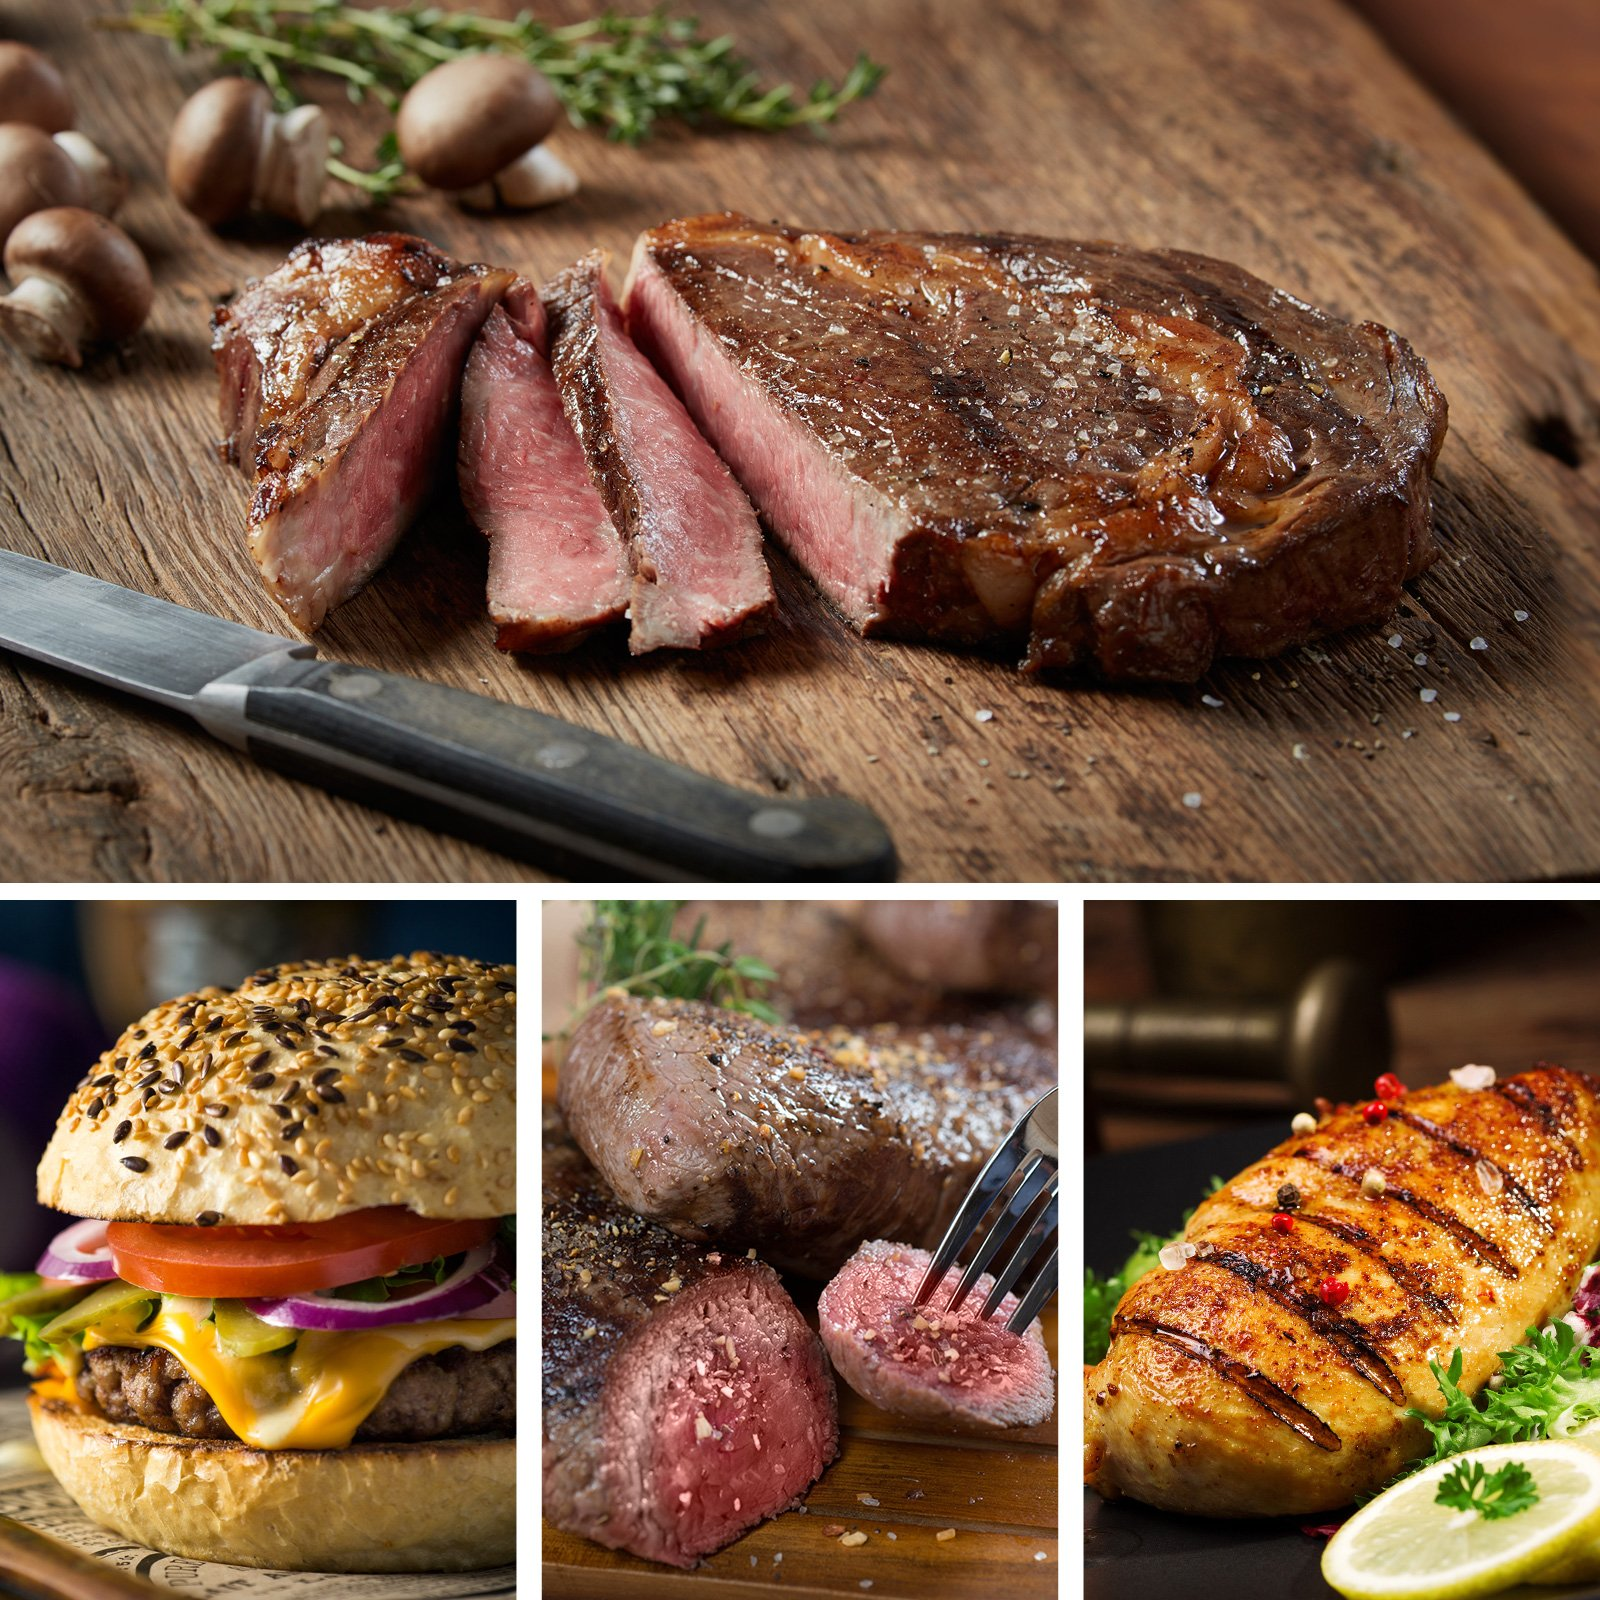 Ultimate Grilling Assortment - Includes Ribeye and Top Sirloin Steaks, Angus Steak Burgers, and Lemon Herb Chicken Breasts - Chicago Steak Company - ASSRT401 by Chicago Steak Company